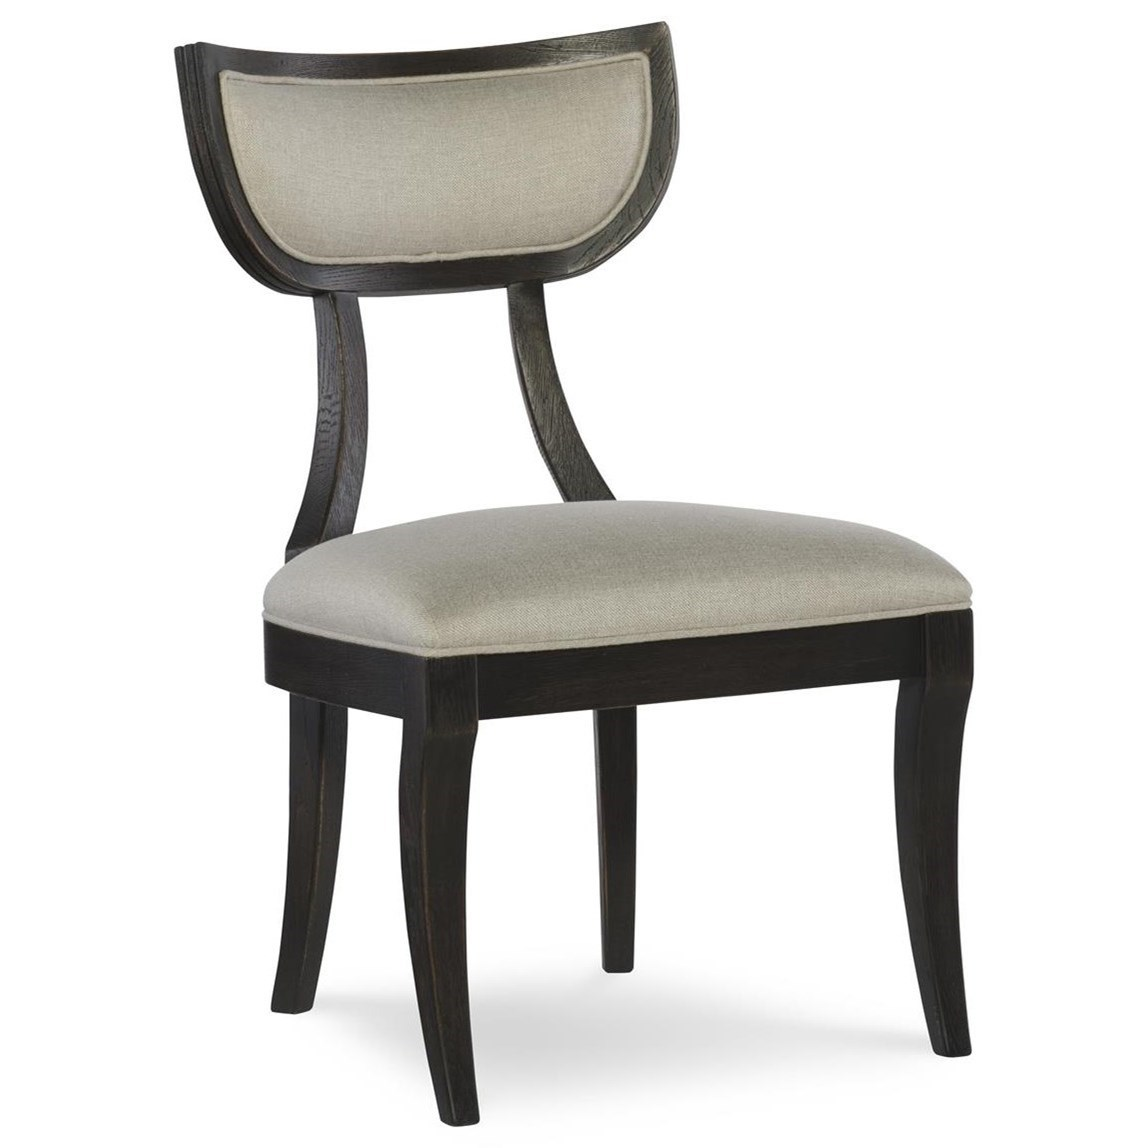 By Fine Furniture Design. Contemporary Dining Side Chair